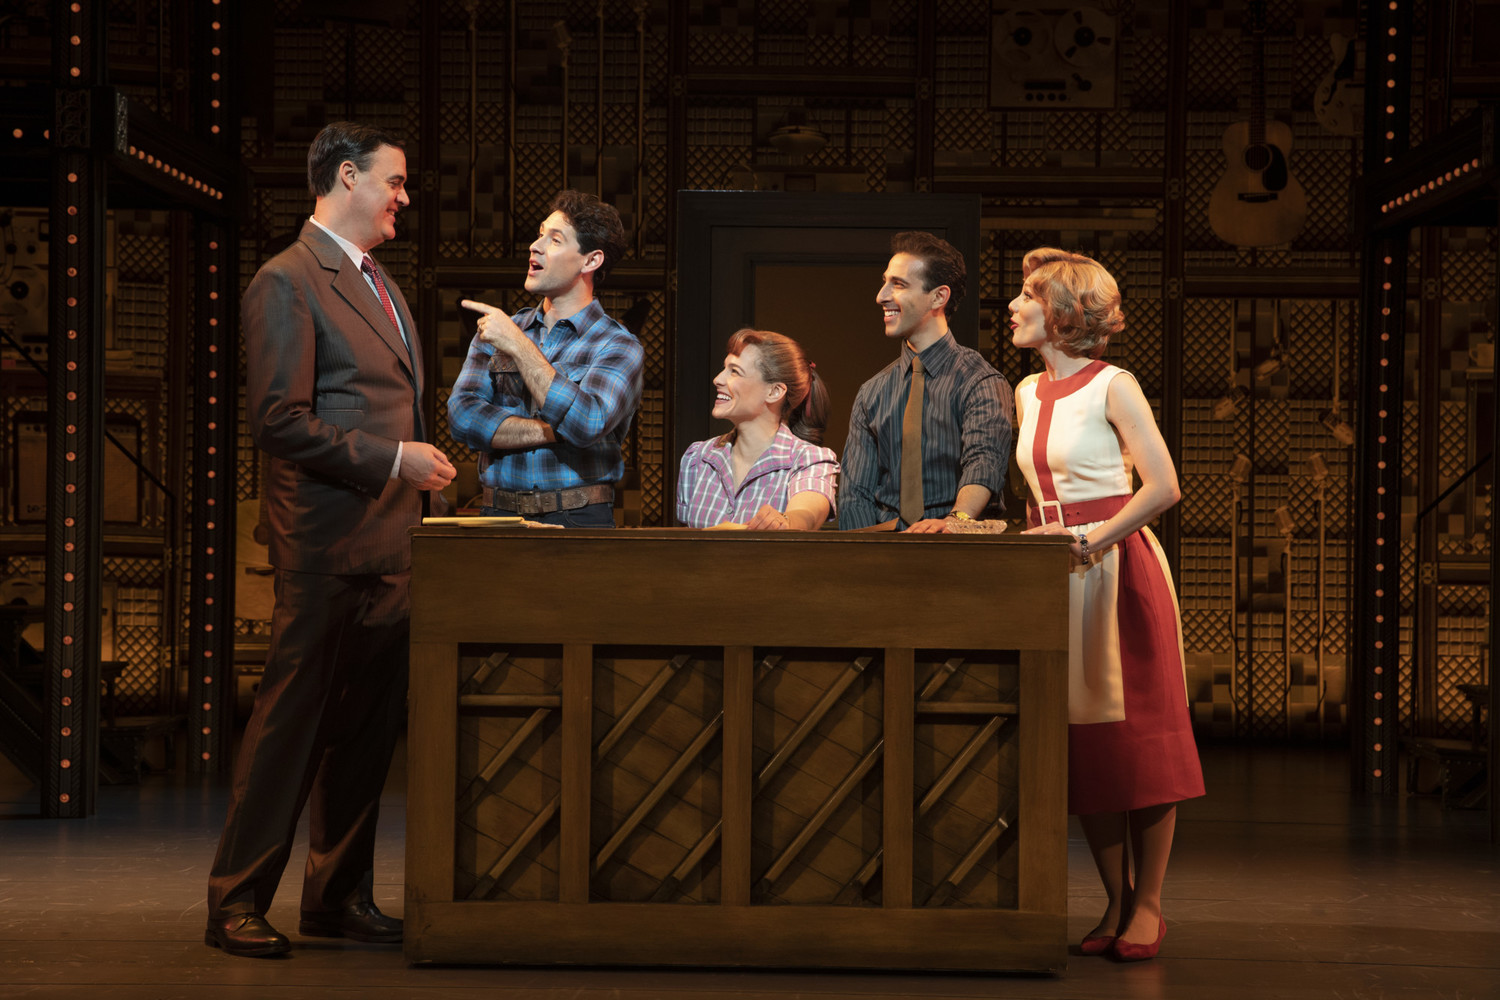 BWW Review: BEAUTIFUL: THE CAROLE KING MUSICAL at The National Theatre